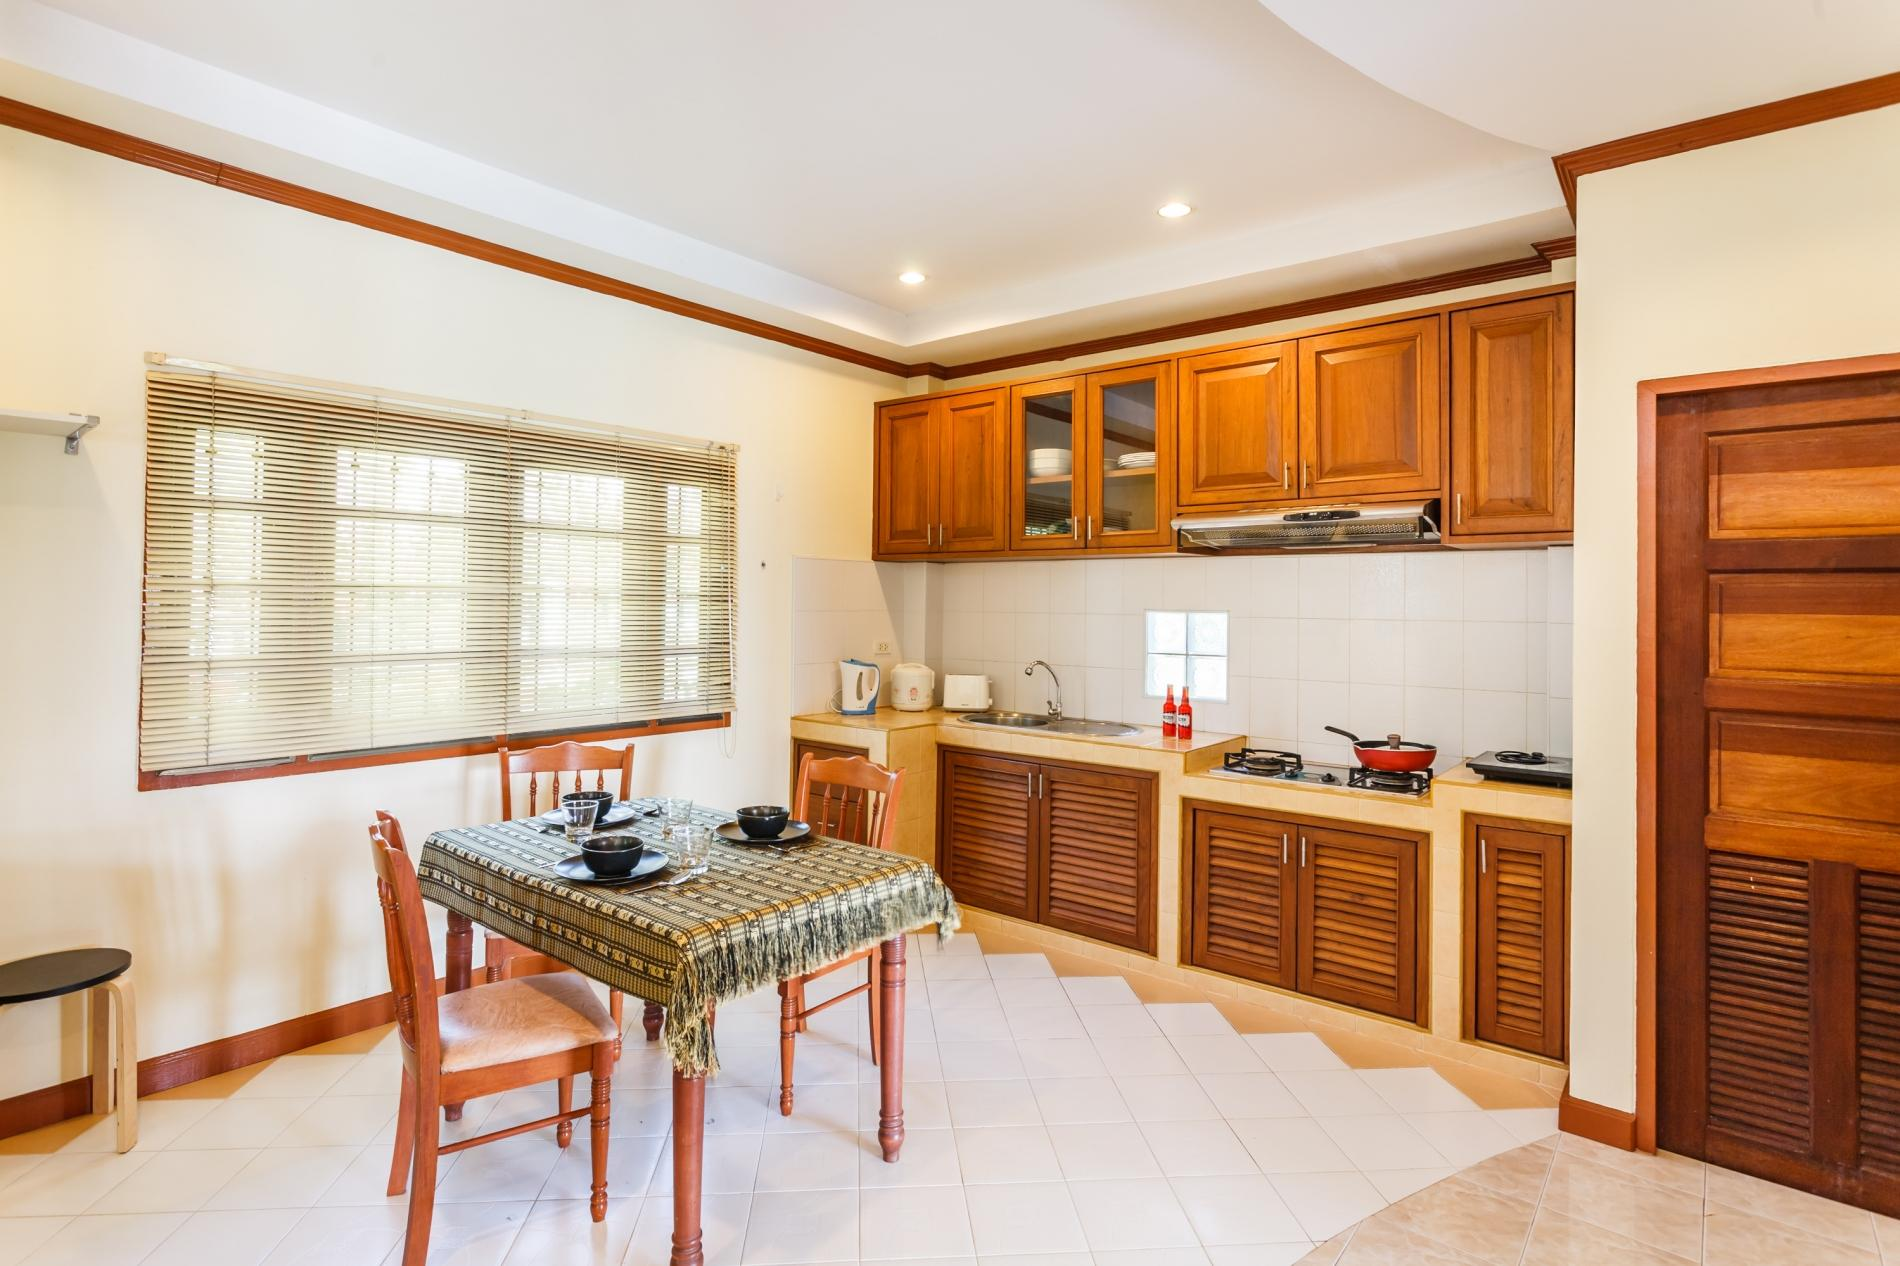 Vista Villa 2 - Sea view Patong house for 4 guests in quiet neighbourhood photo 13985553